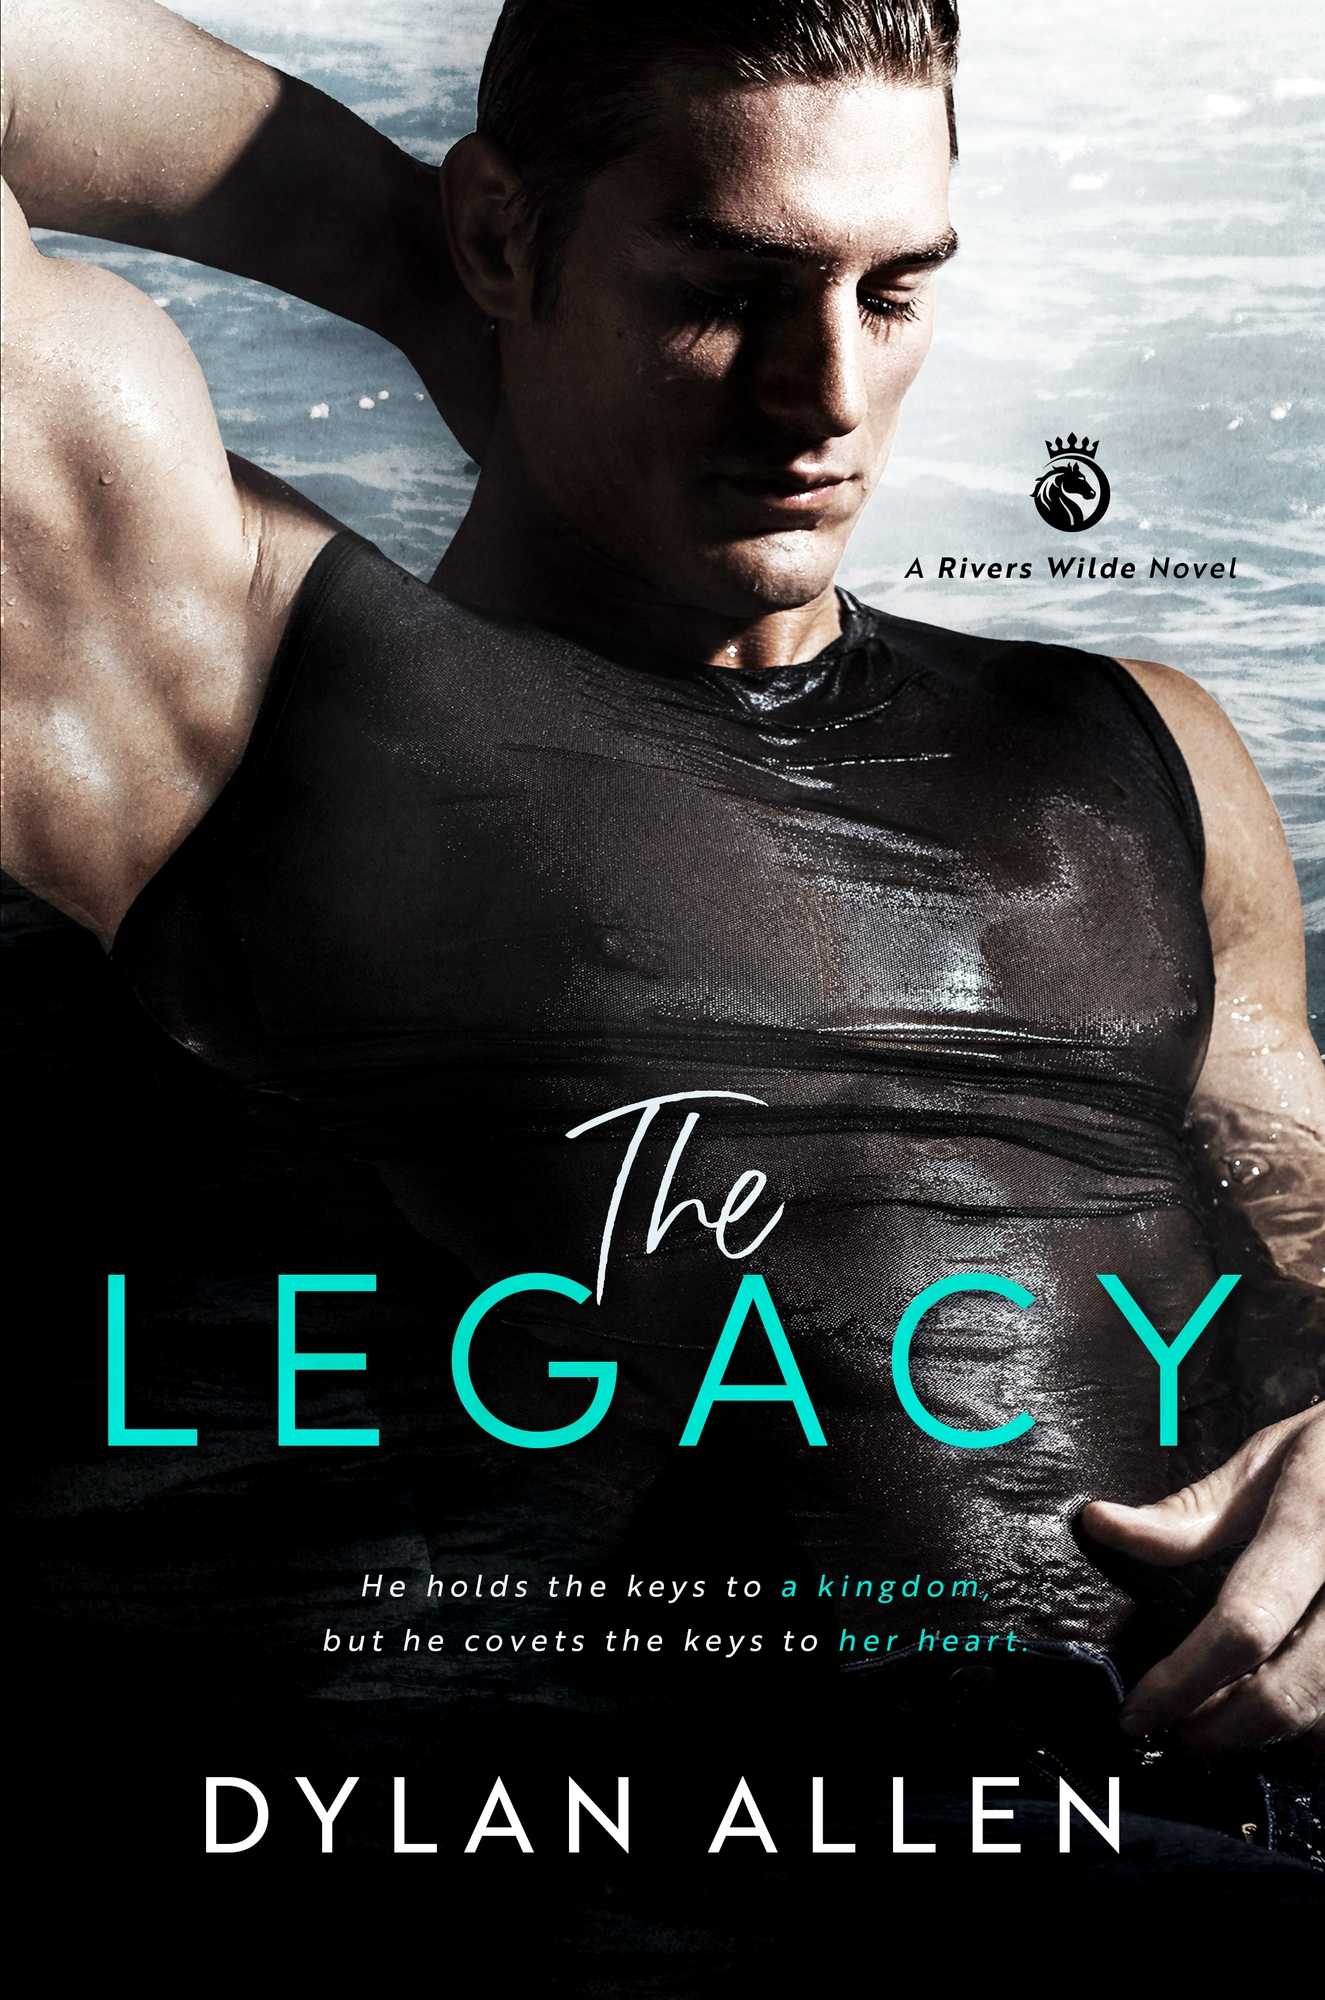 The Legacy by Dylan Allen [Review]